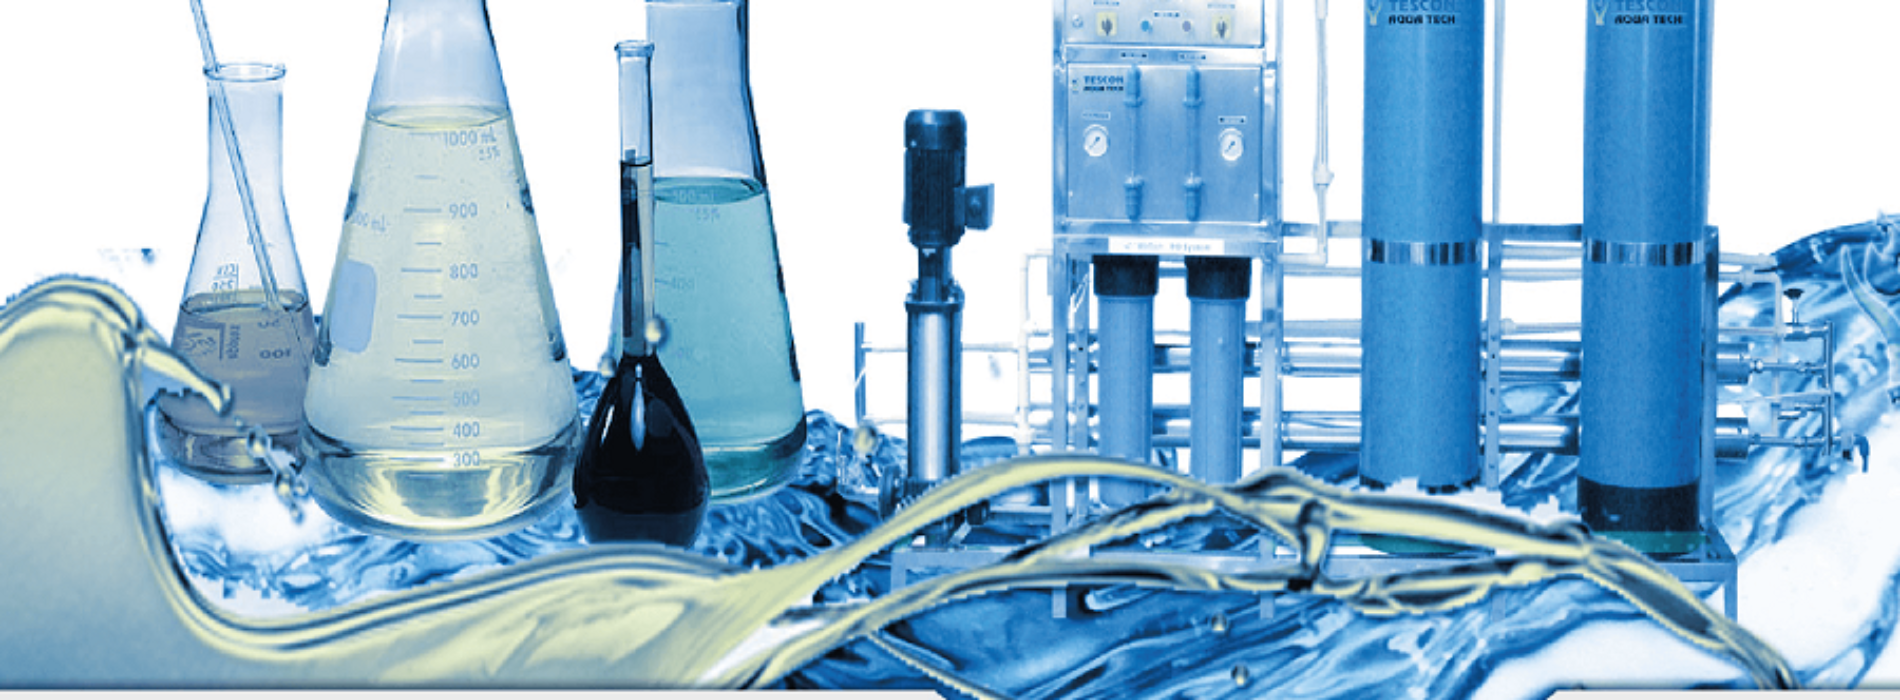 Online services of water treatment companies